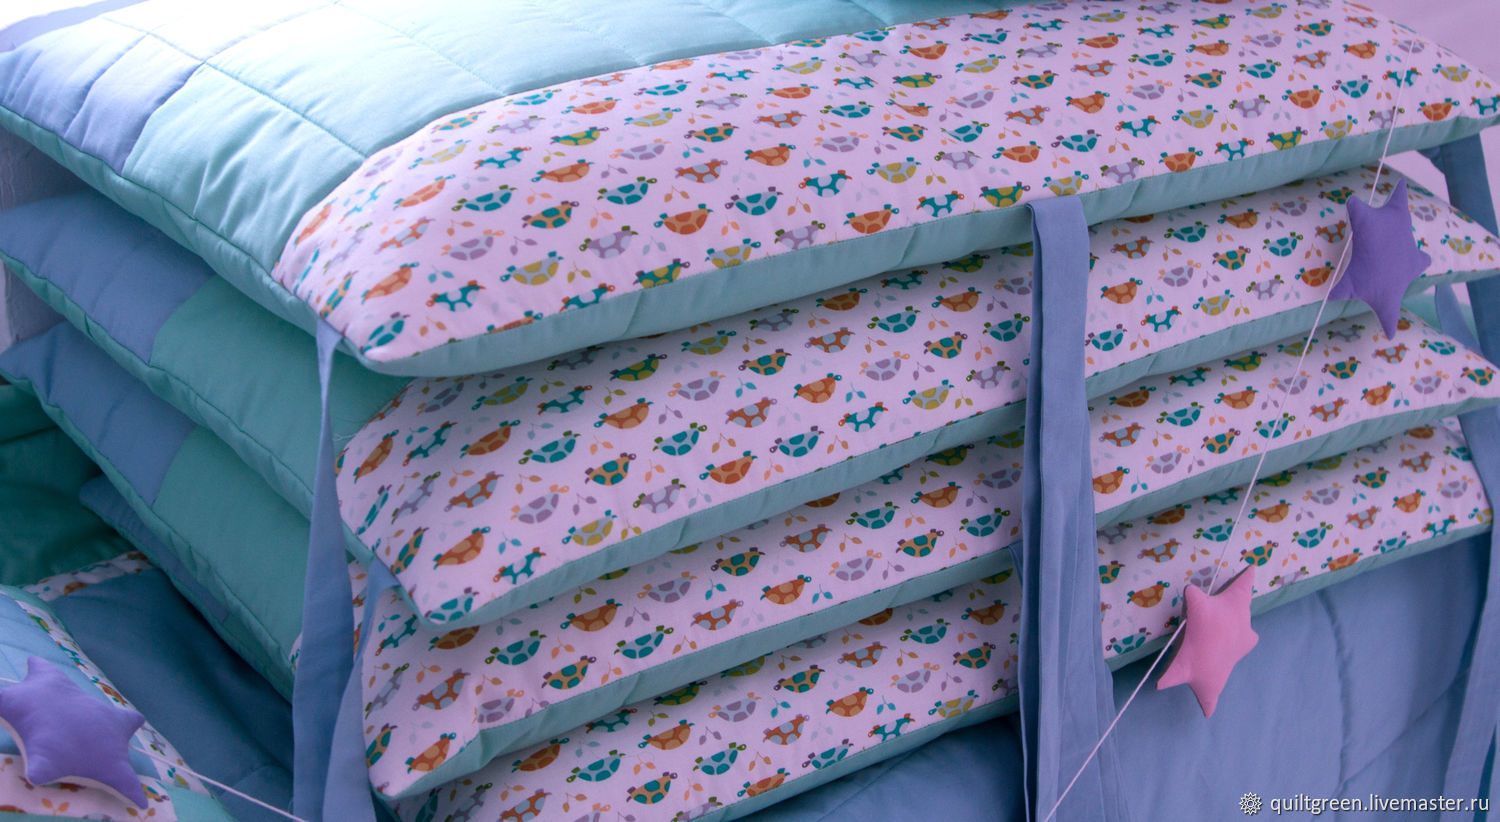 Kit with bumpers for children's cots 'Turtles', Sides for crib, St. Petersburg,  Фото №1